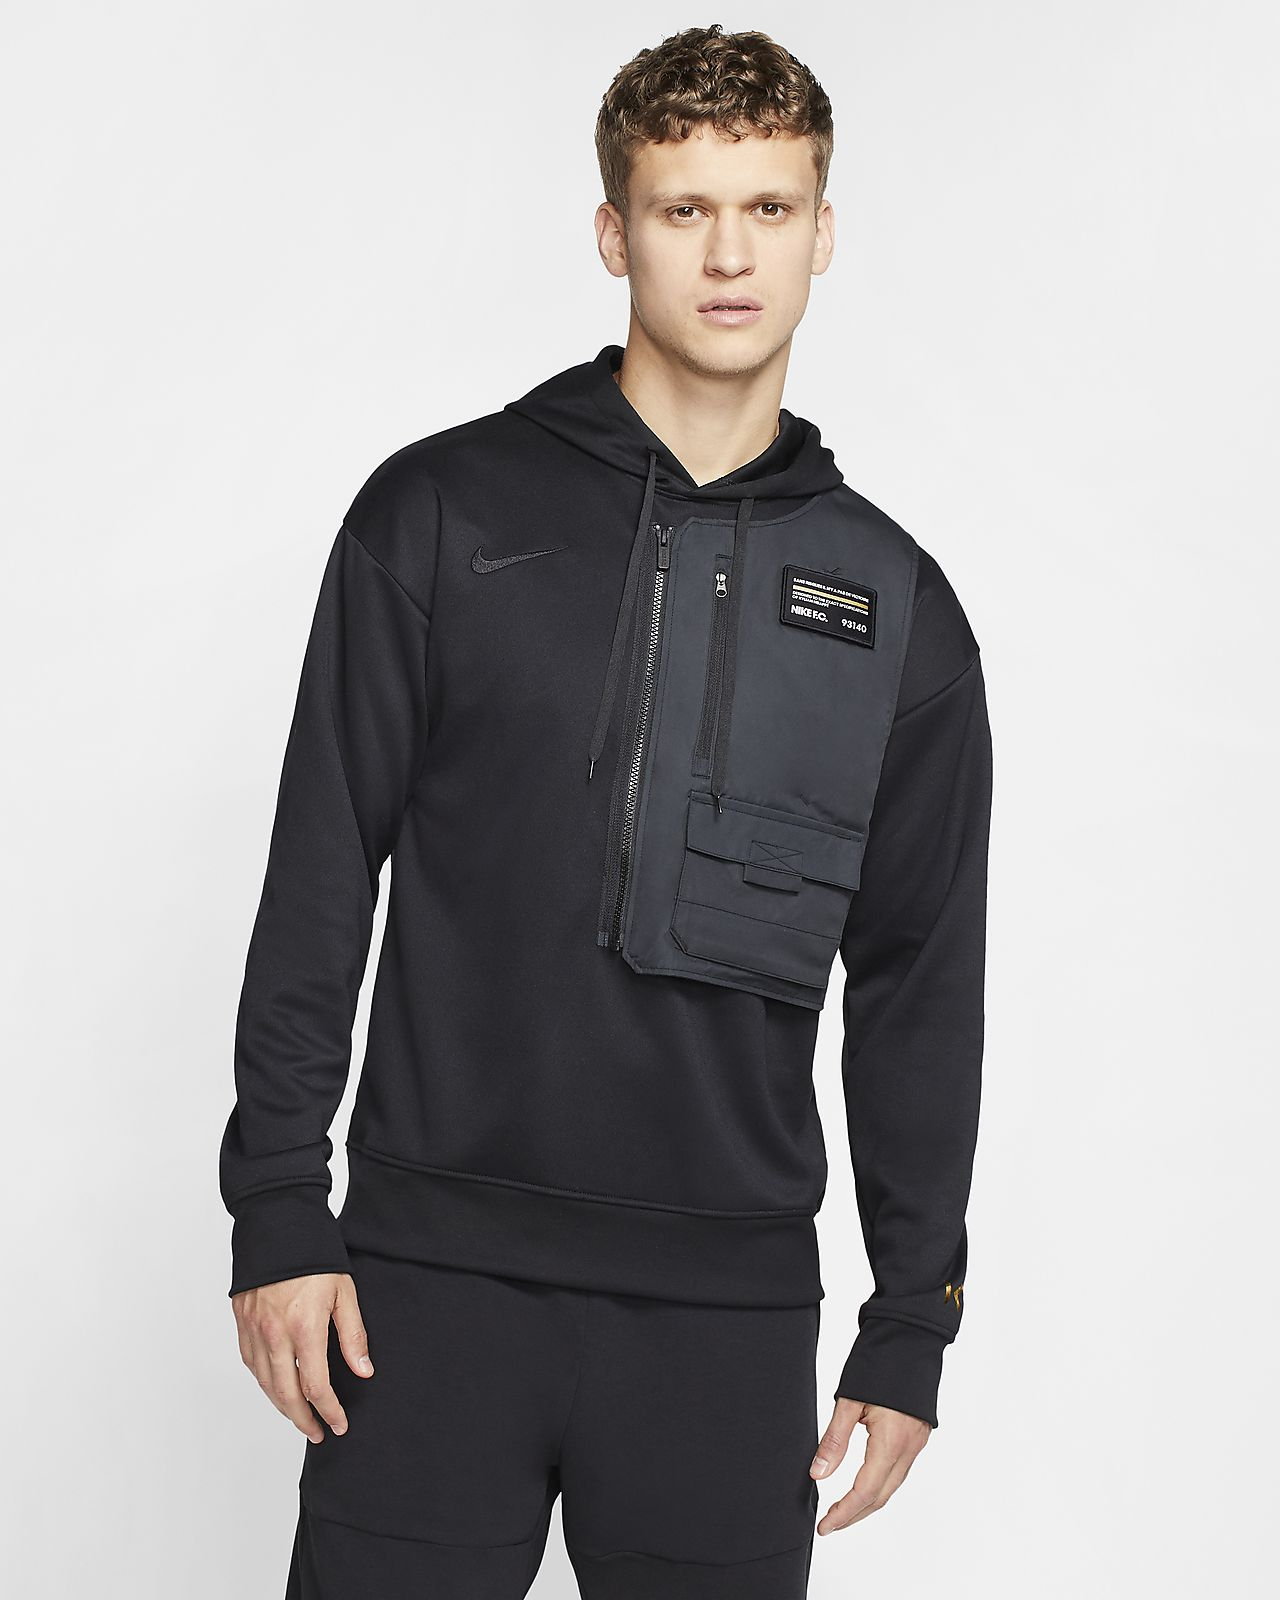 Sweat à capuche de football Nike Dri-FIT Bondy pour Homme